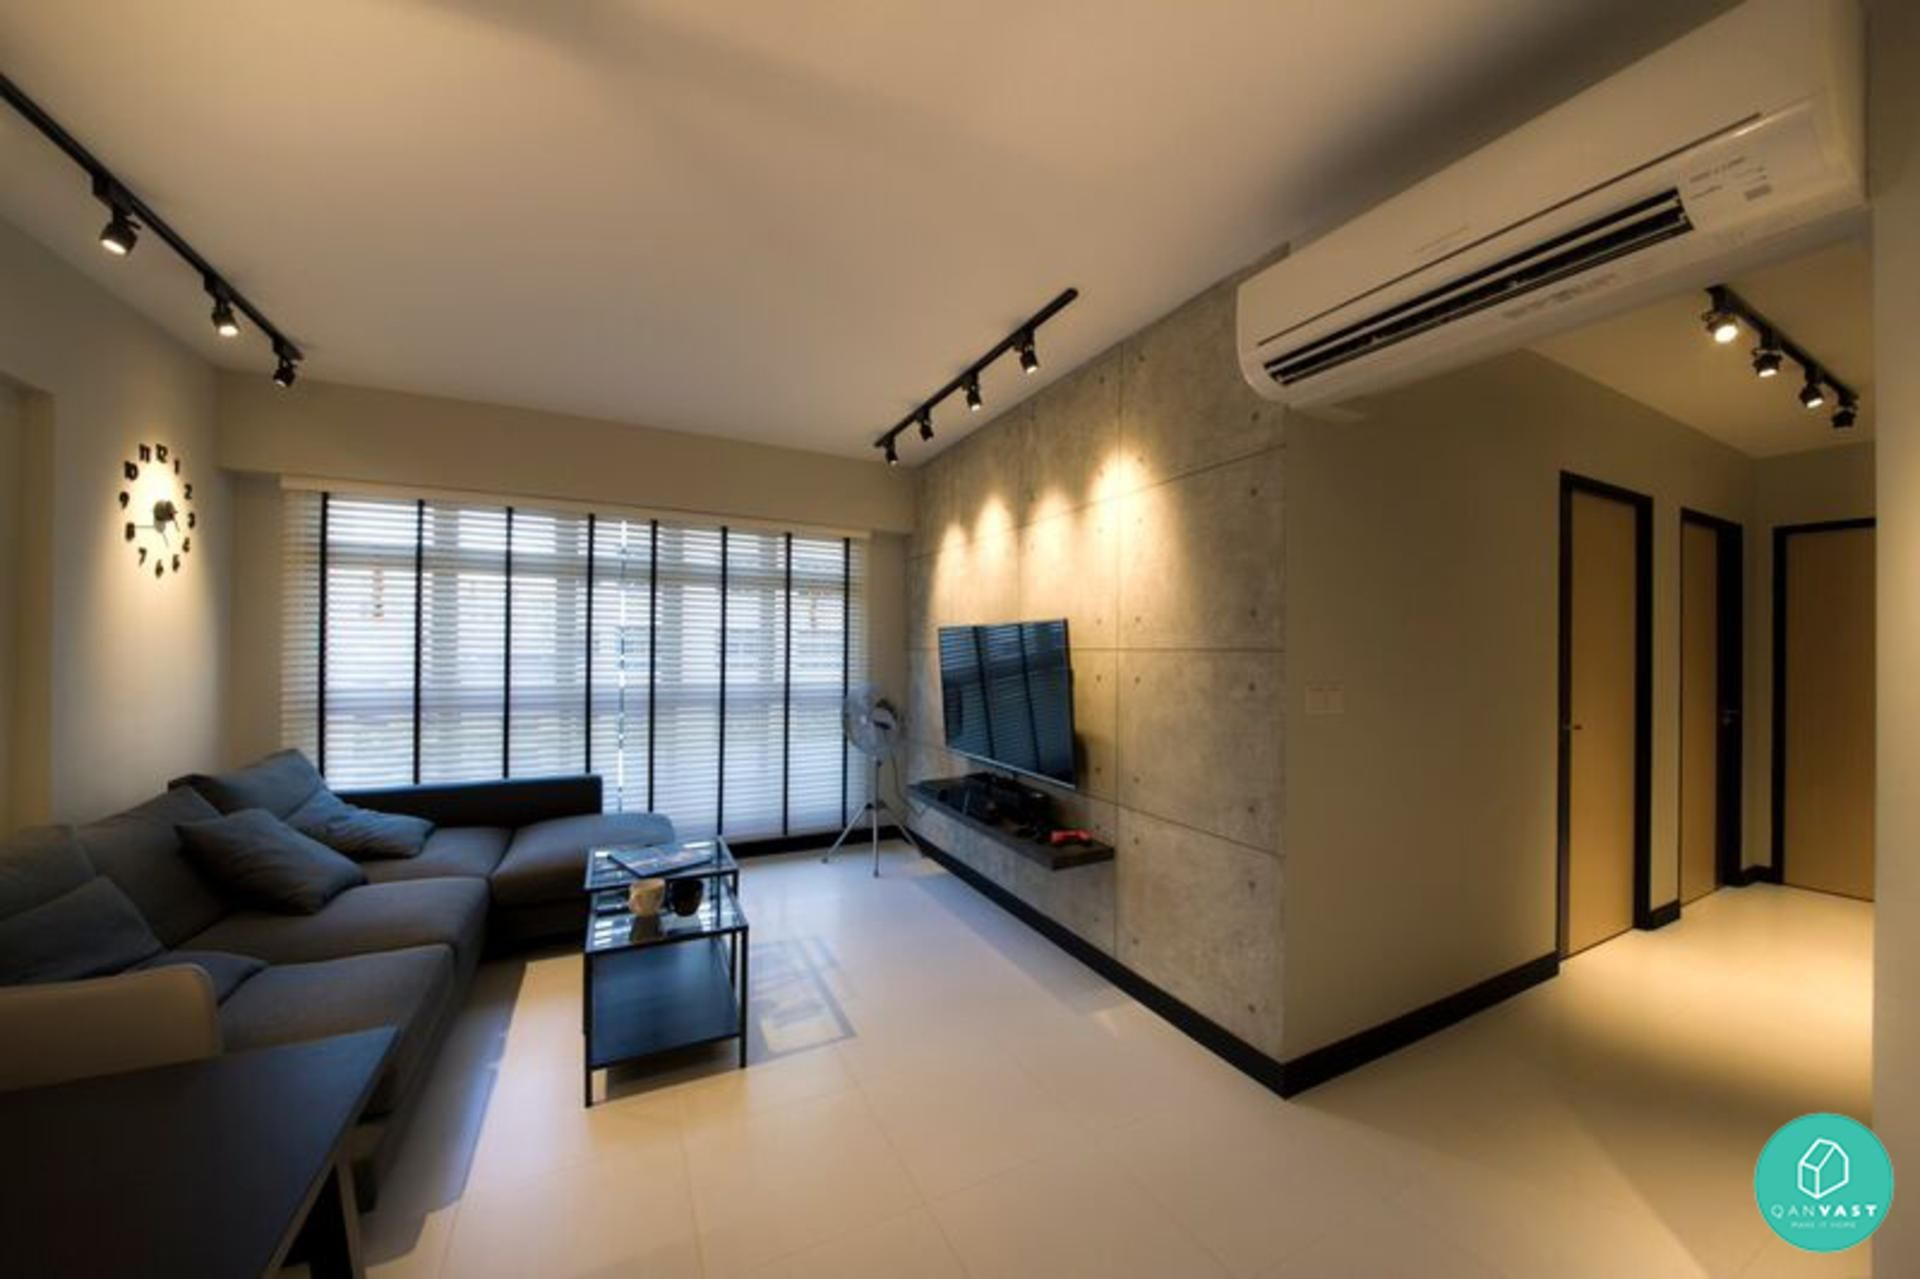 7 Home Designs That Are Simple Clean And Uncluttered Contemporary Apartment Interior Design Singapore House Interior